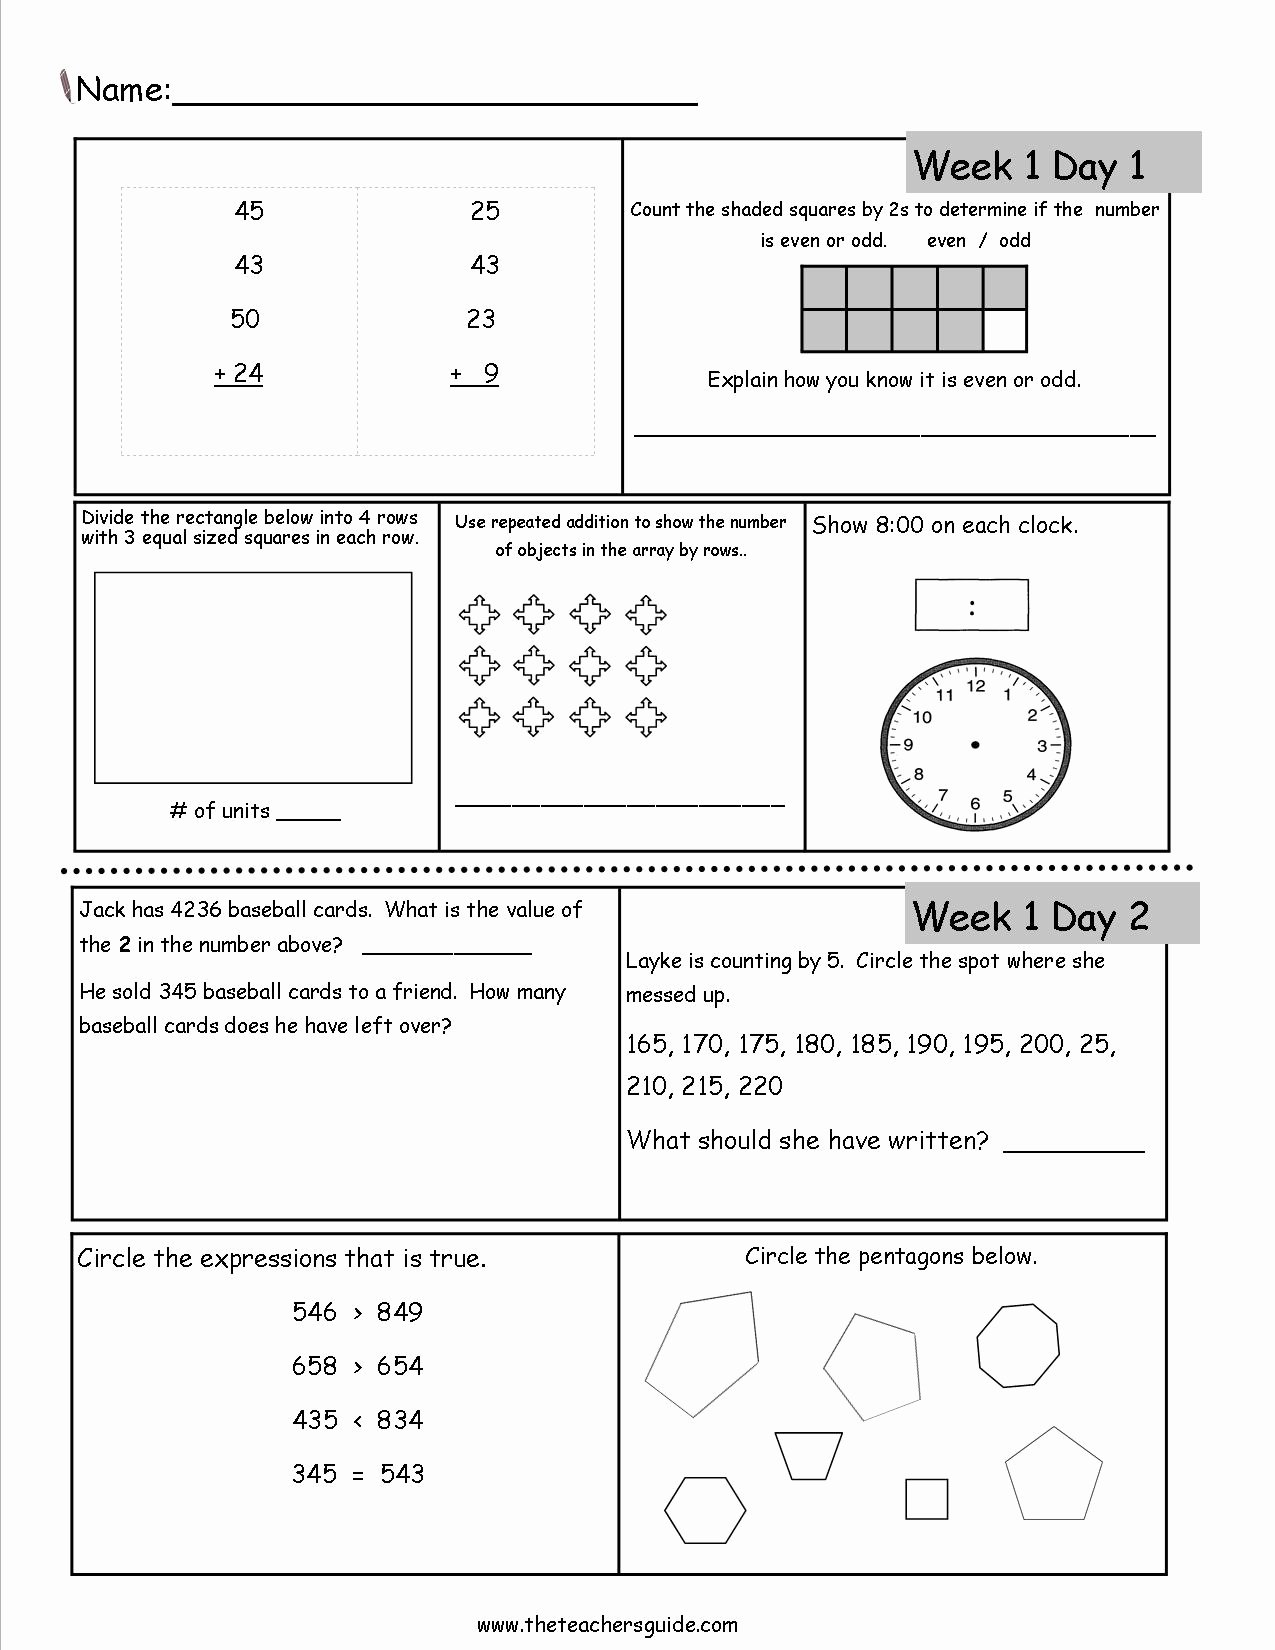 3rd Grade Multiplication Worksheets Grade 3 New Free 3rd Grade Daily Math Worksheets Dailymath3rd Printable